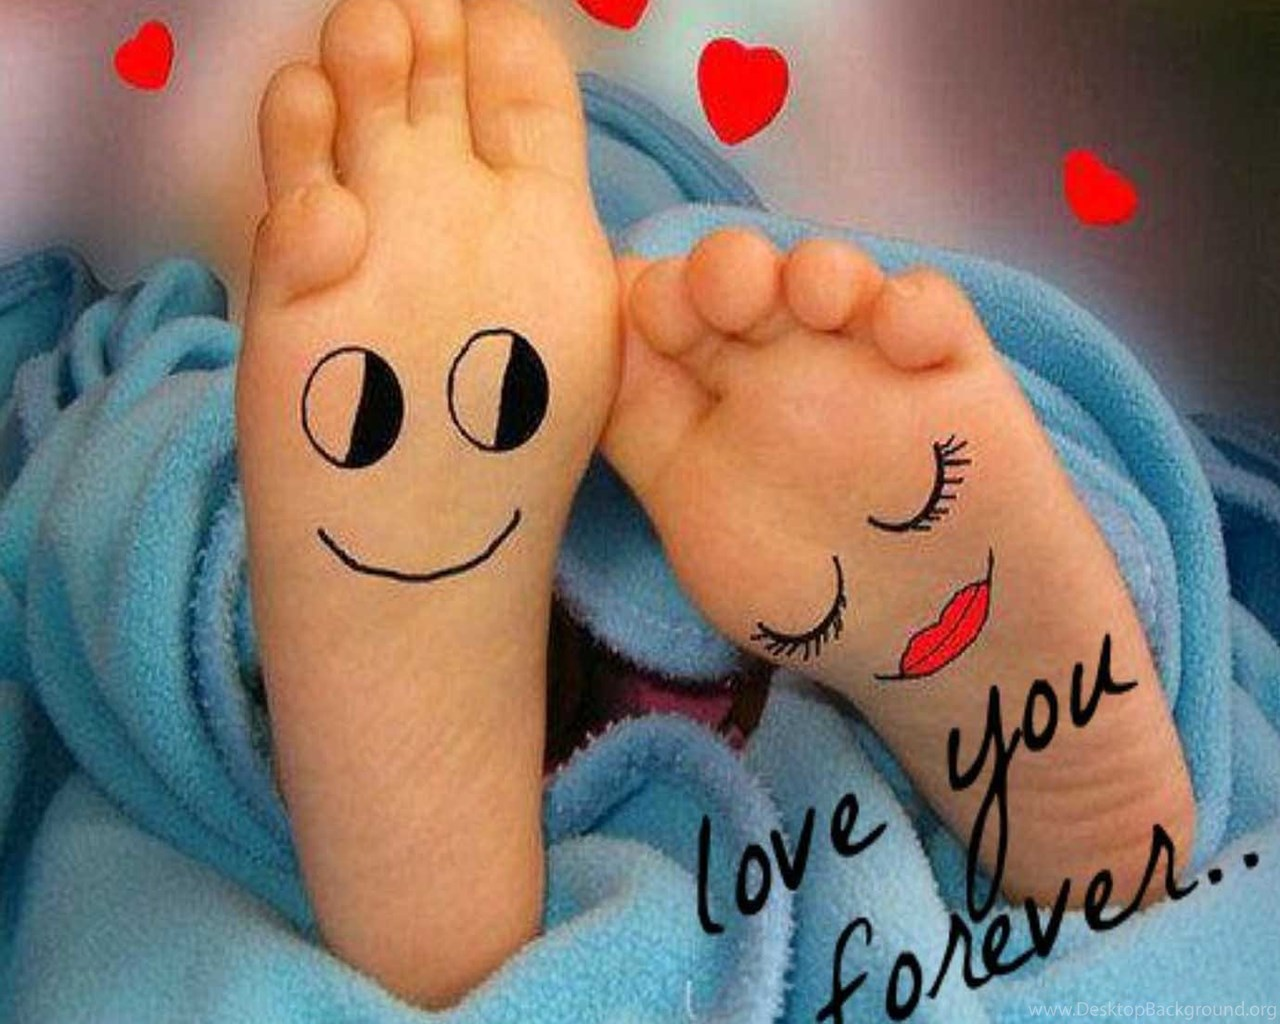 Free Download Cute Love Wallpapers For Mobile 7 Desktop Background